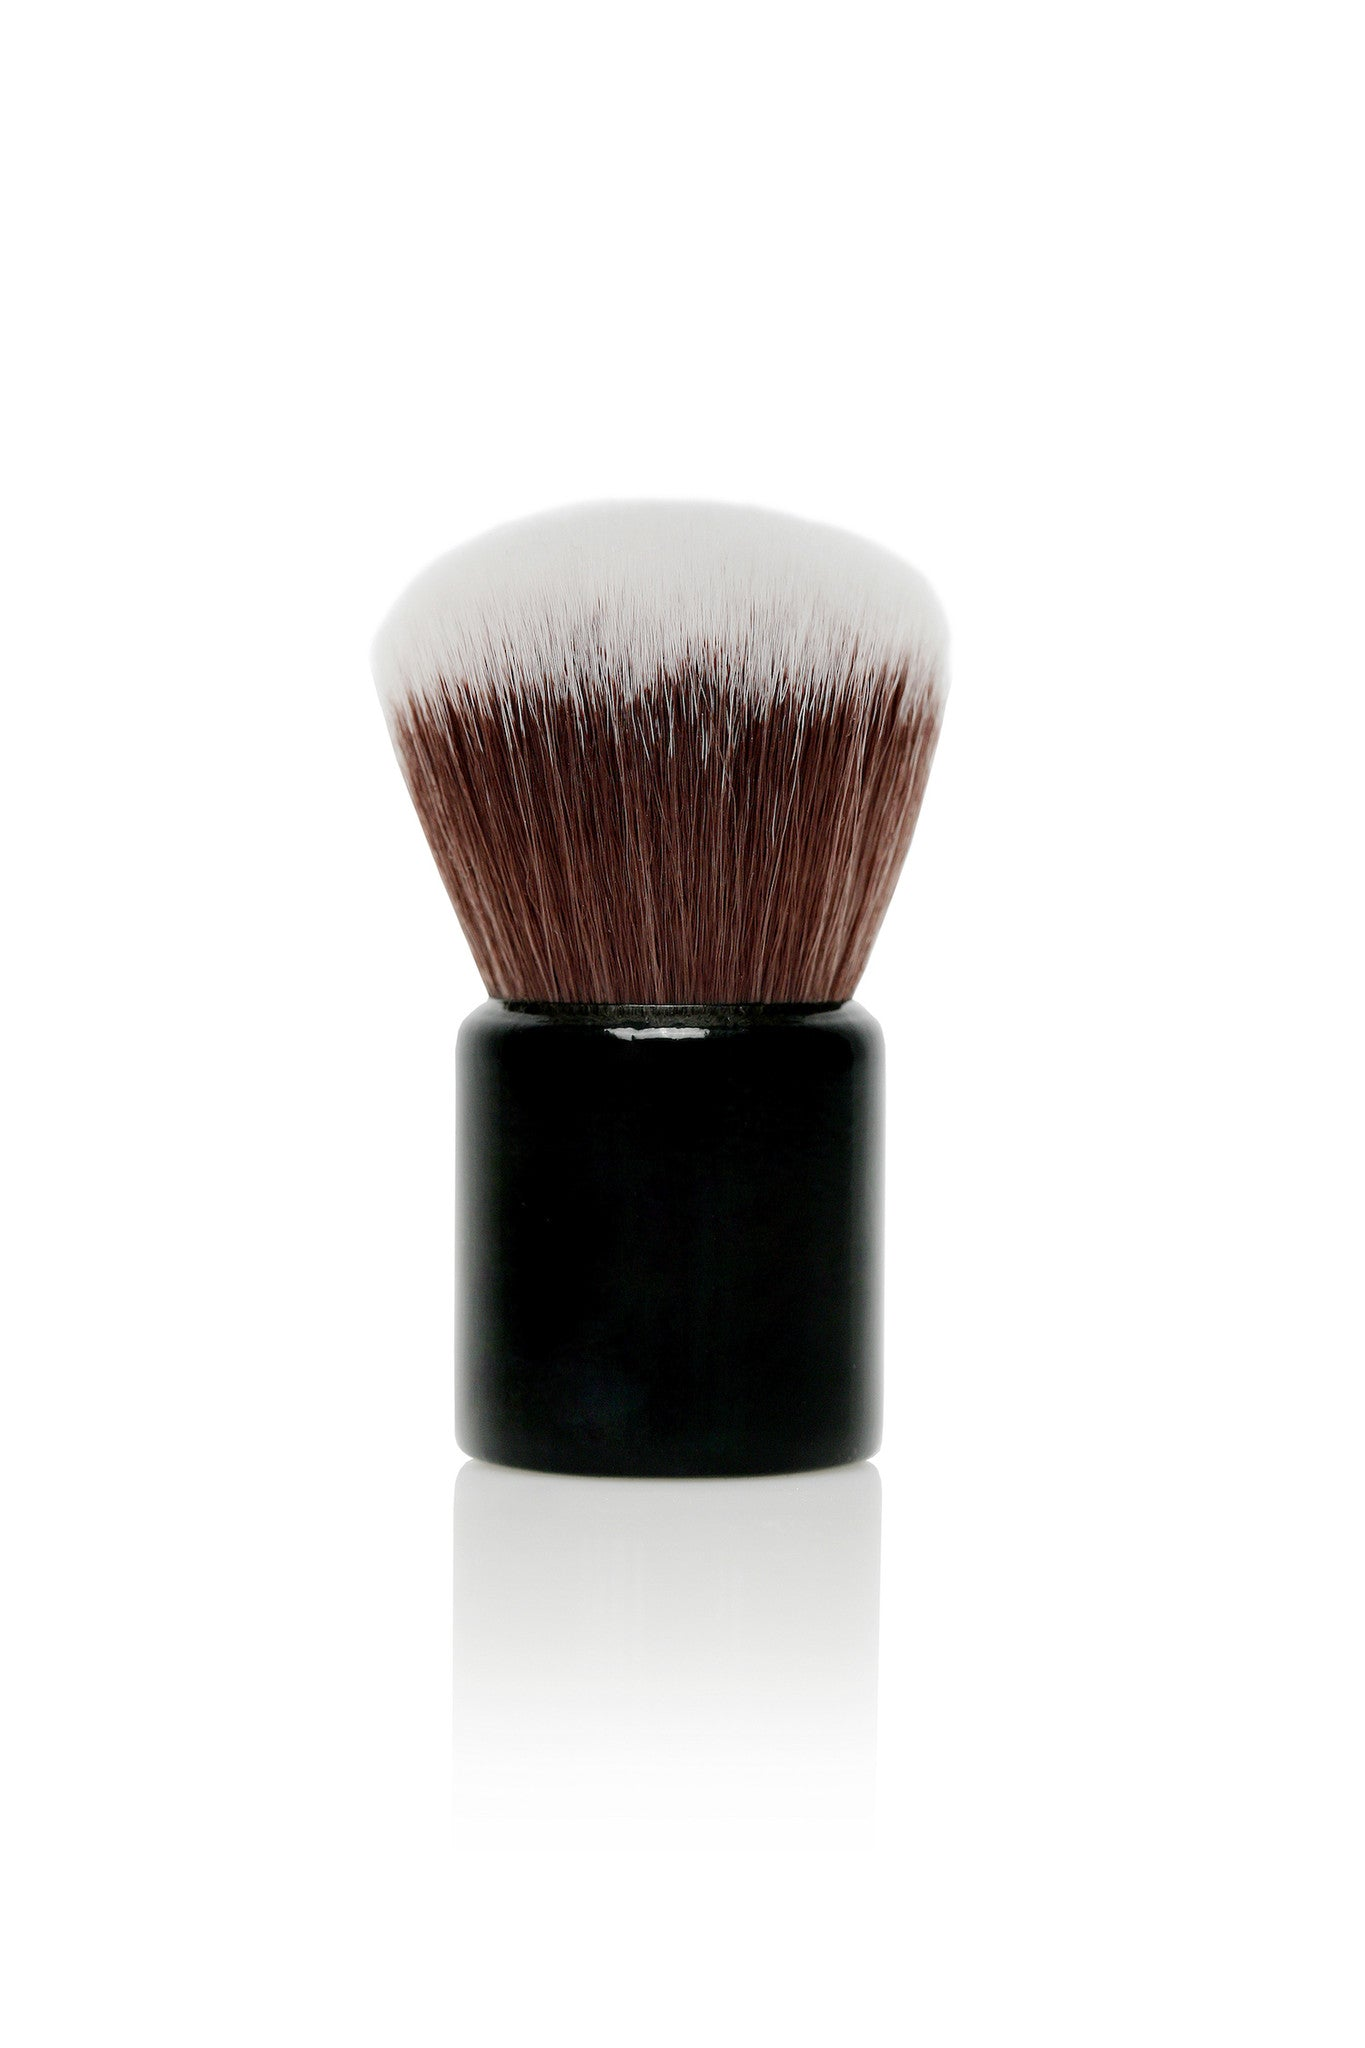 ARTISTS KABUKI BRUSH